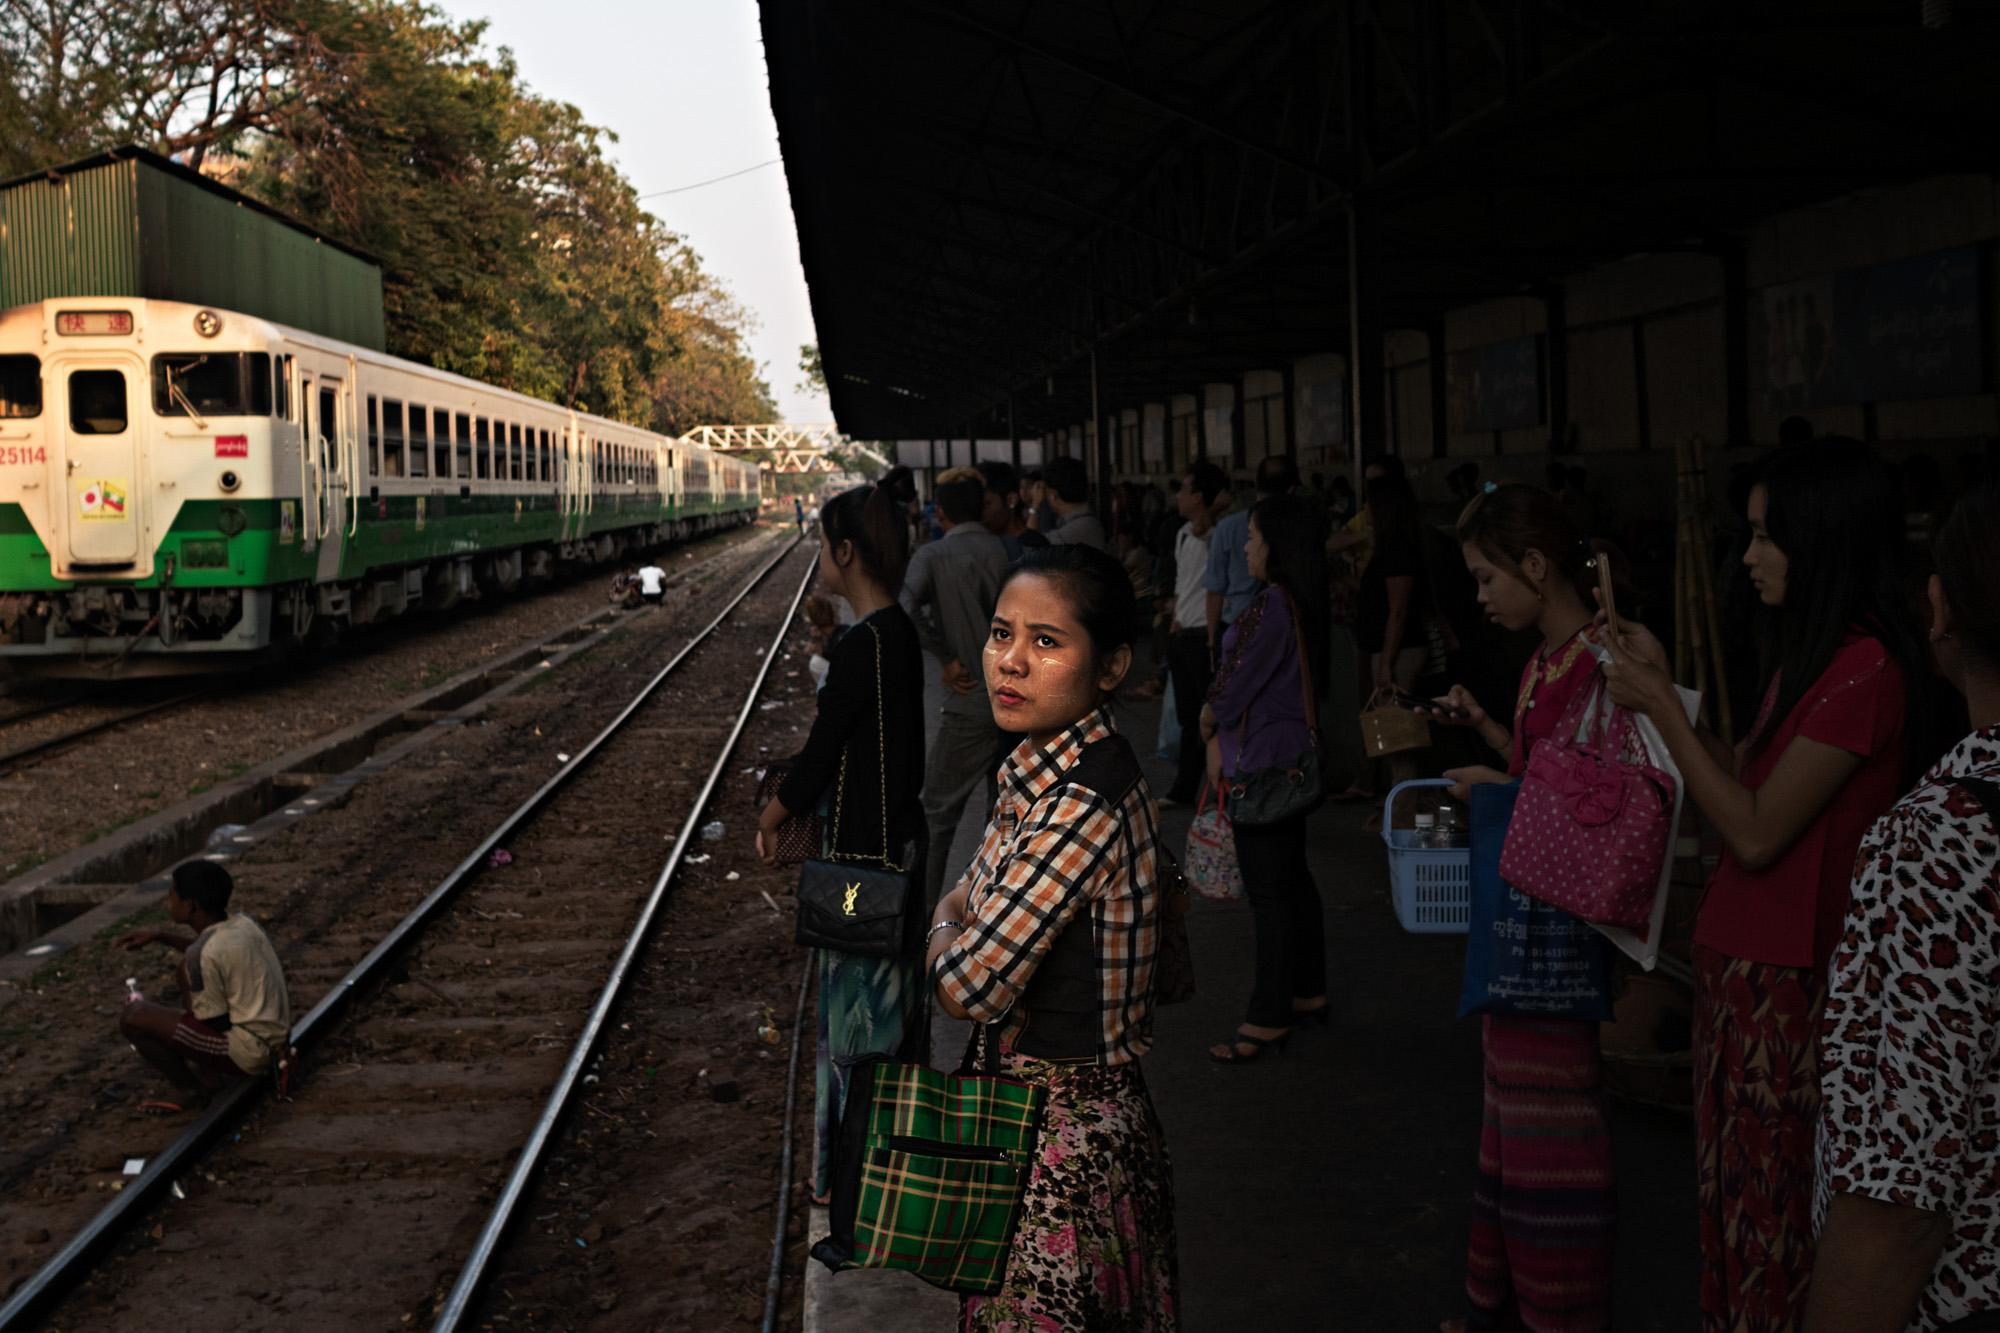 A woman waits for the train on her way home from work in Yangon, Myanmar.